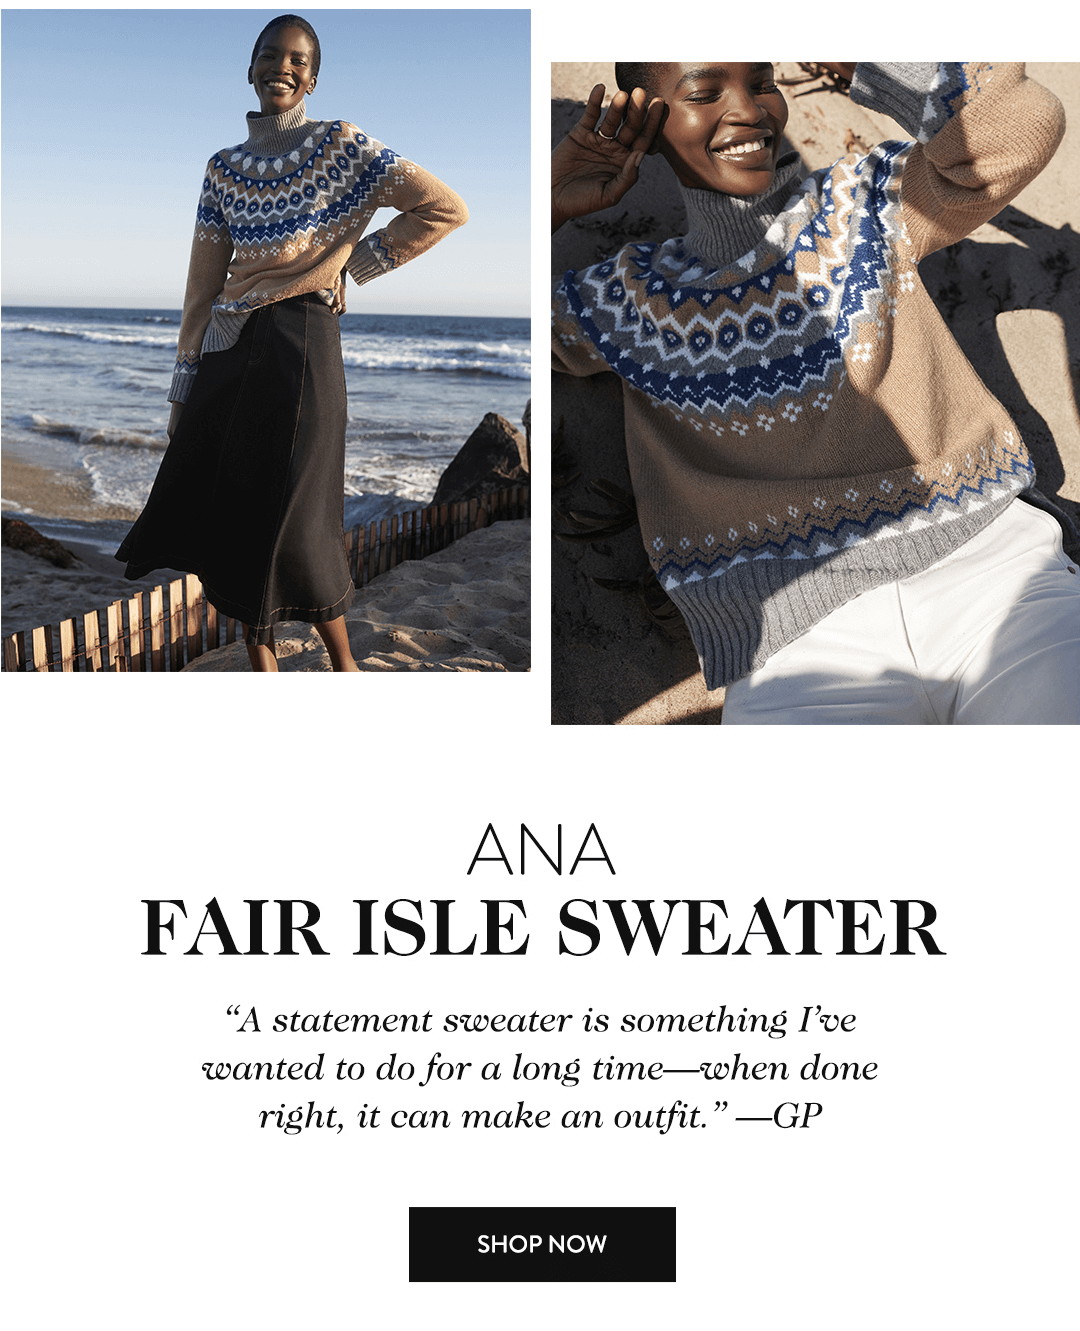 Ana Fair Isle Sweater